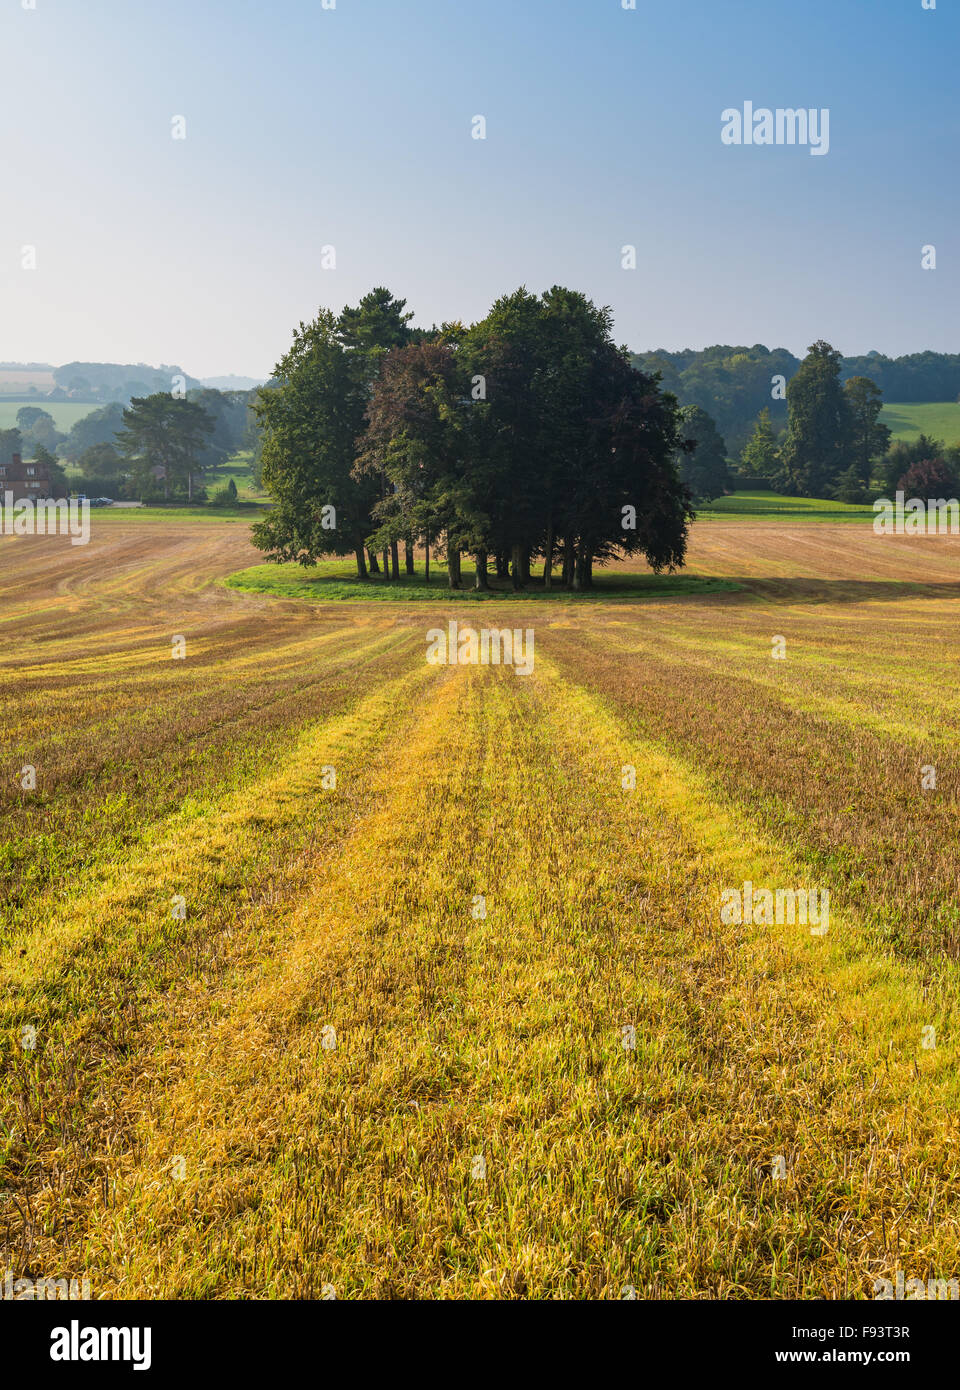 A view on the Kent Downs AONB, looking towards Swarling Manor, Petham, Kent. - Stock Image